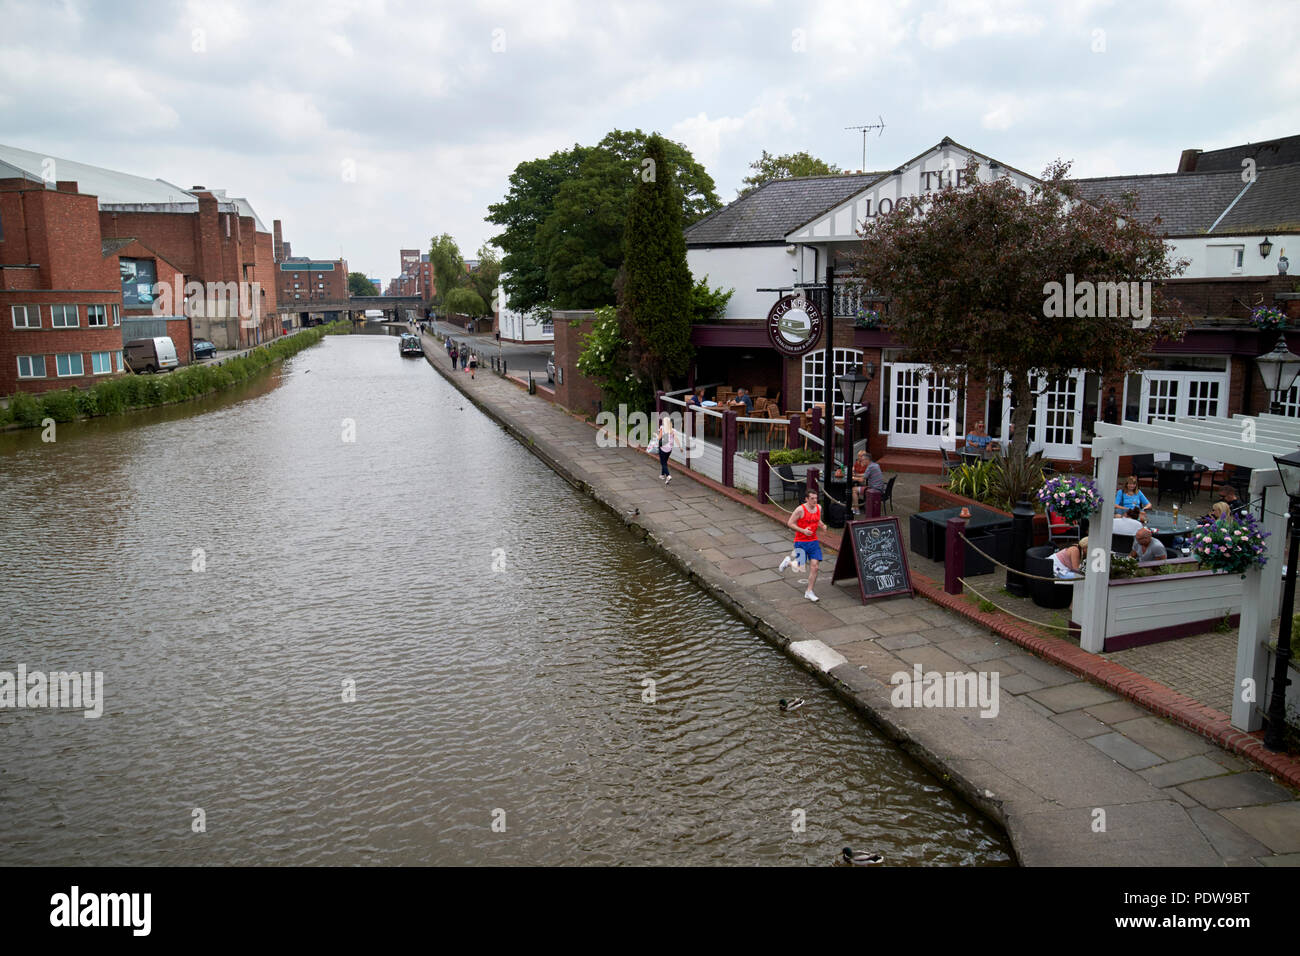 Shropshire union canal main line and lock keeper pub canal side chester cheshire england uk - Stock Image